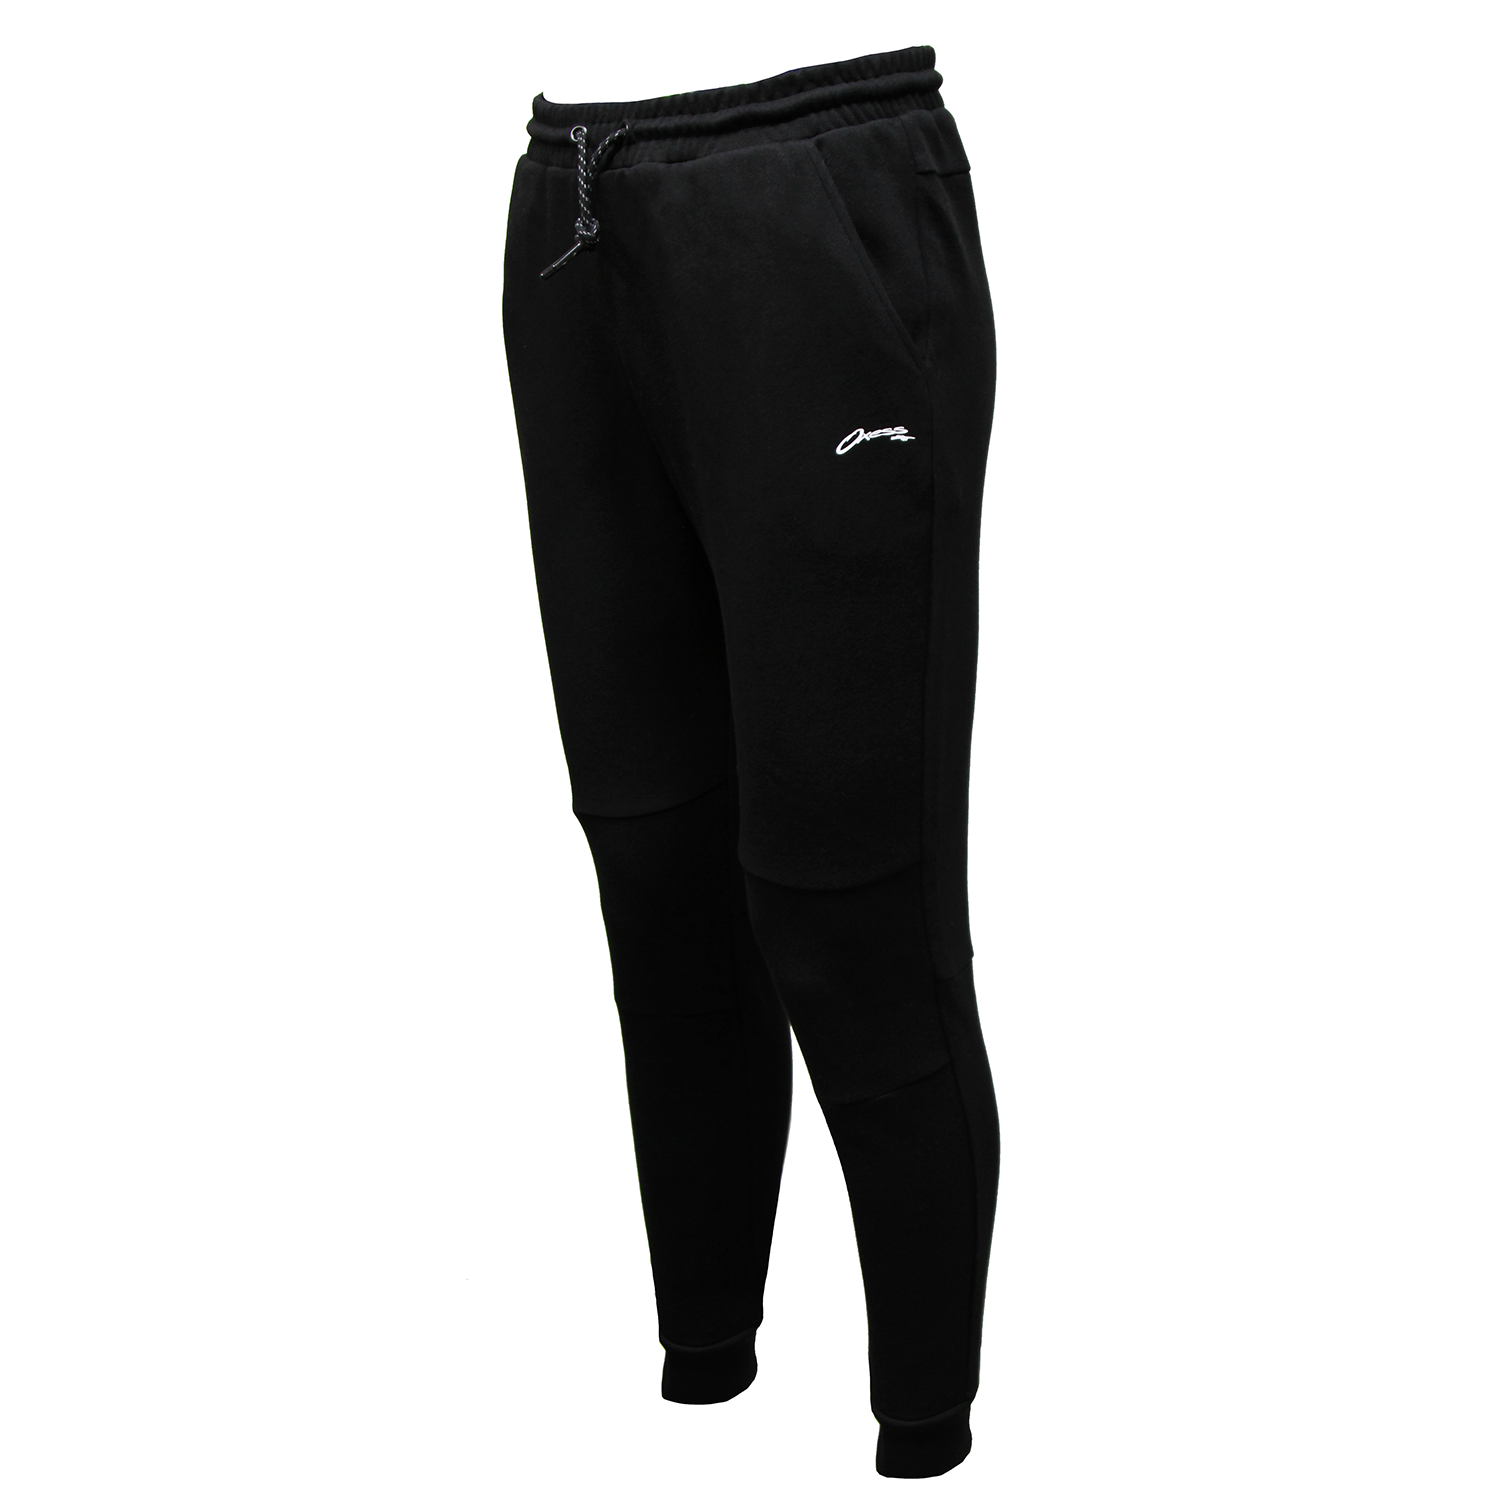 30% SALE - 옥세스 트레이닝 팬츠 / OXESS TRAINING SWEAT PANTS